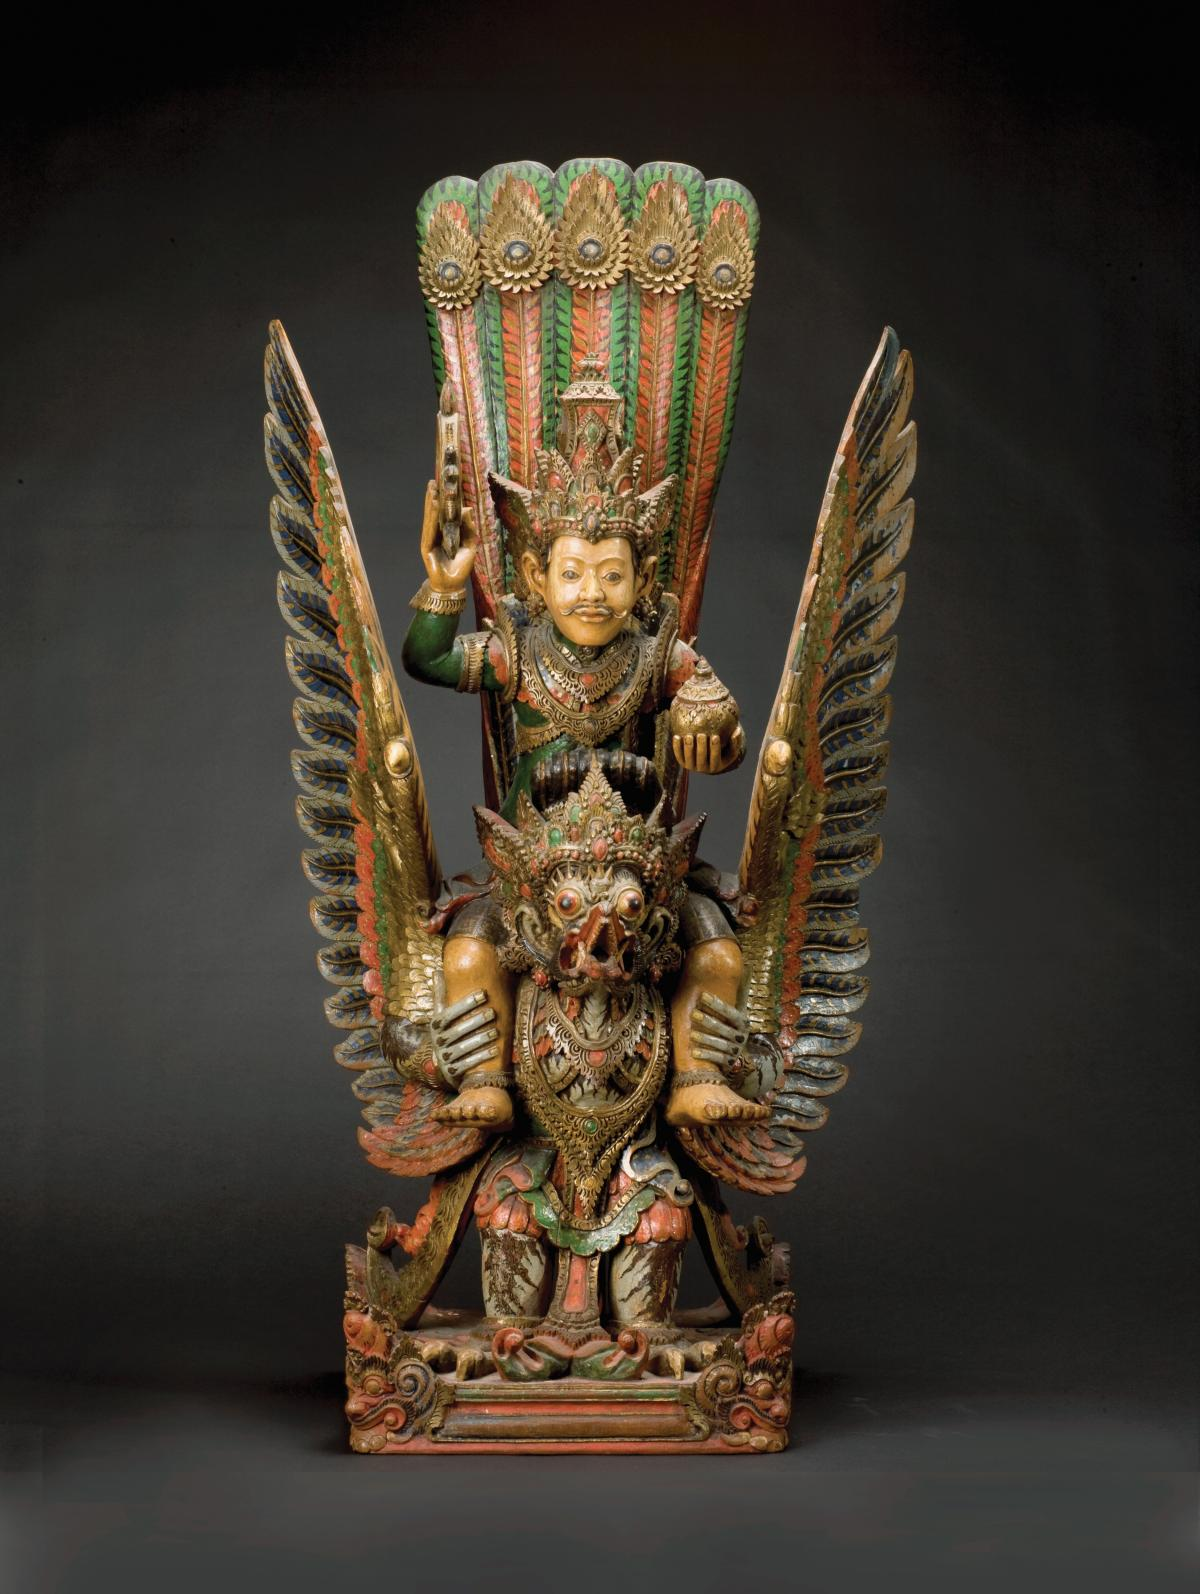 Gold statue of Wisnu, sitting on top of Garuda, painted with aqua, orange and black details